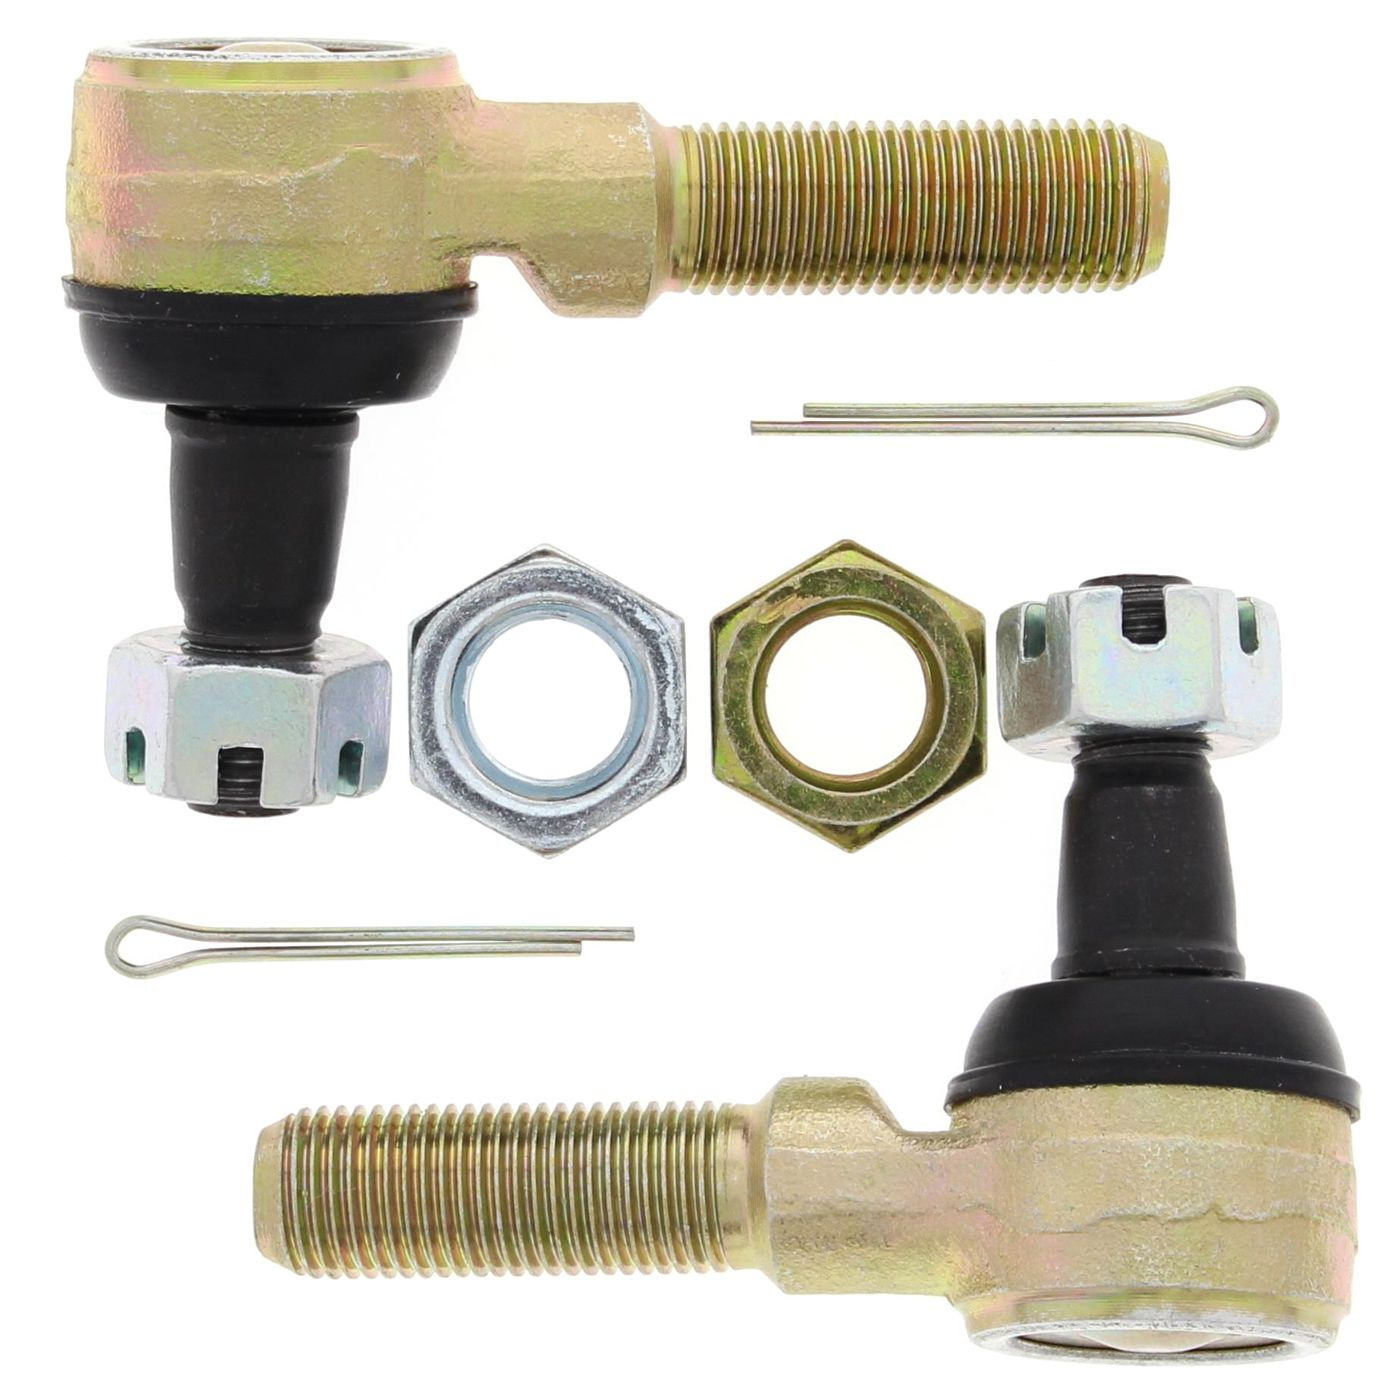 Wrp Tie Rod Ends - WRP511028 image